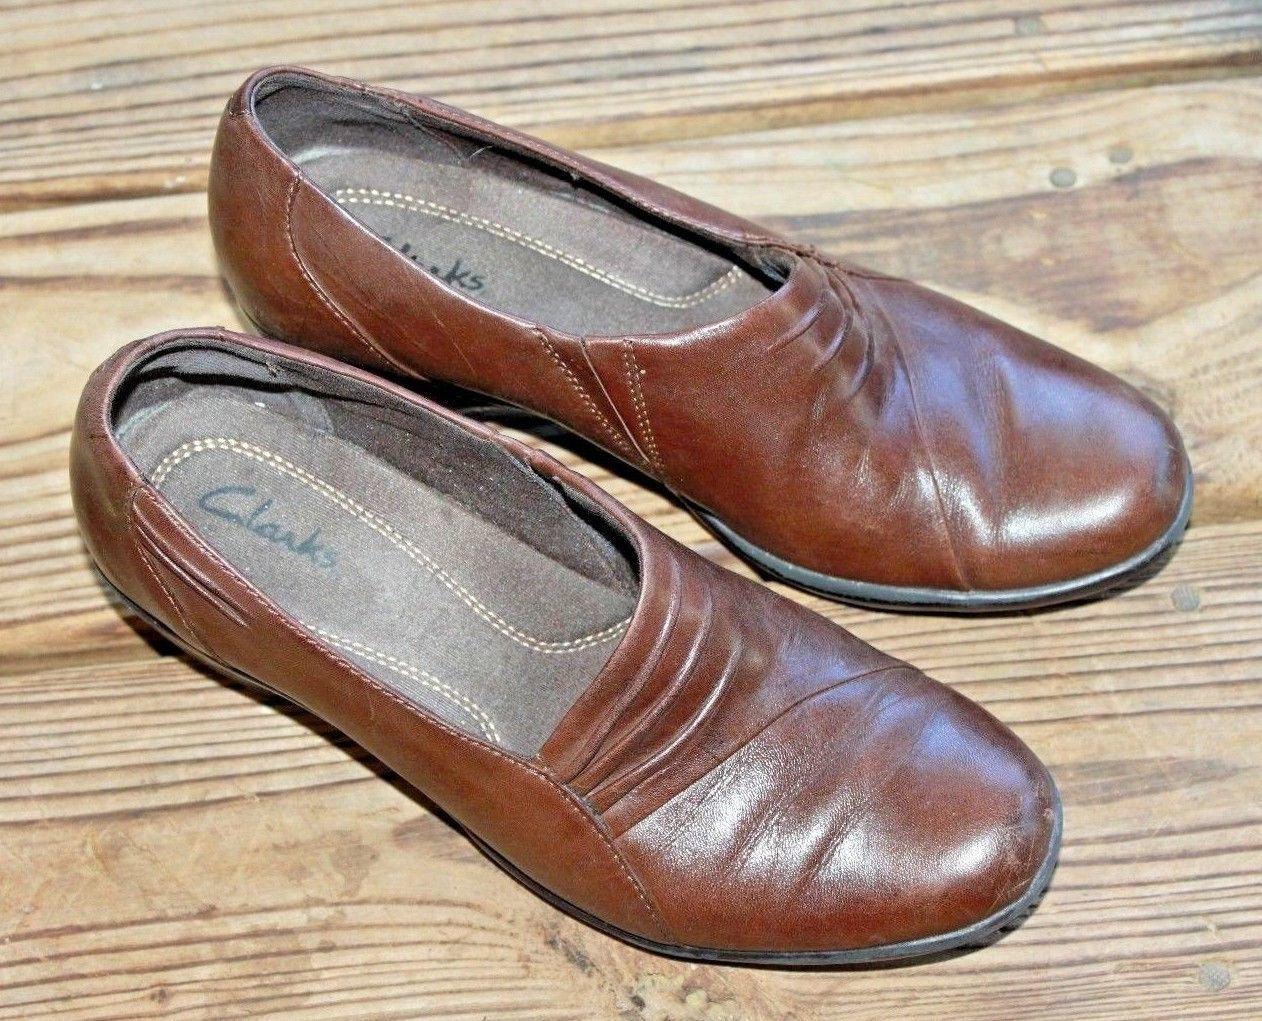 Clarks Size 7 M 83586 Foxtrot Slip On Ruching Casual Wedge Loafers Clogs Women's